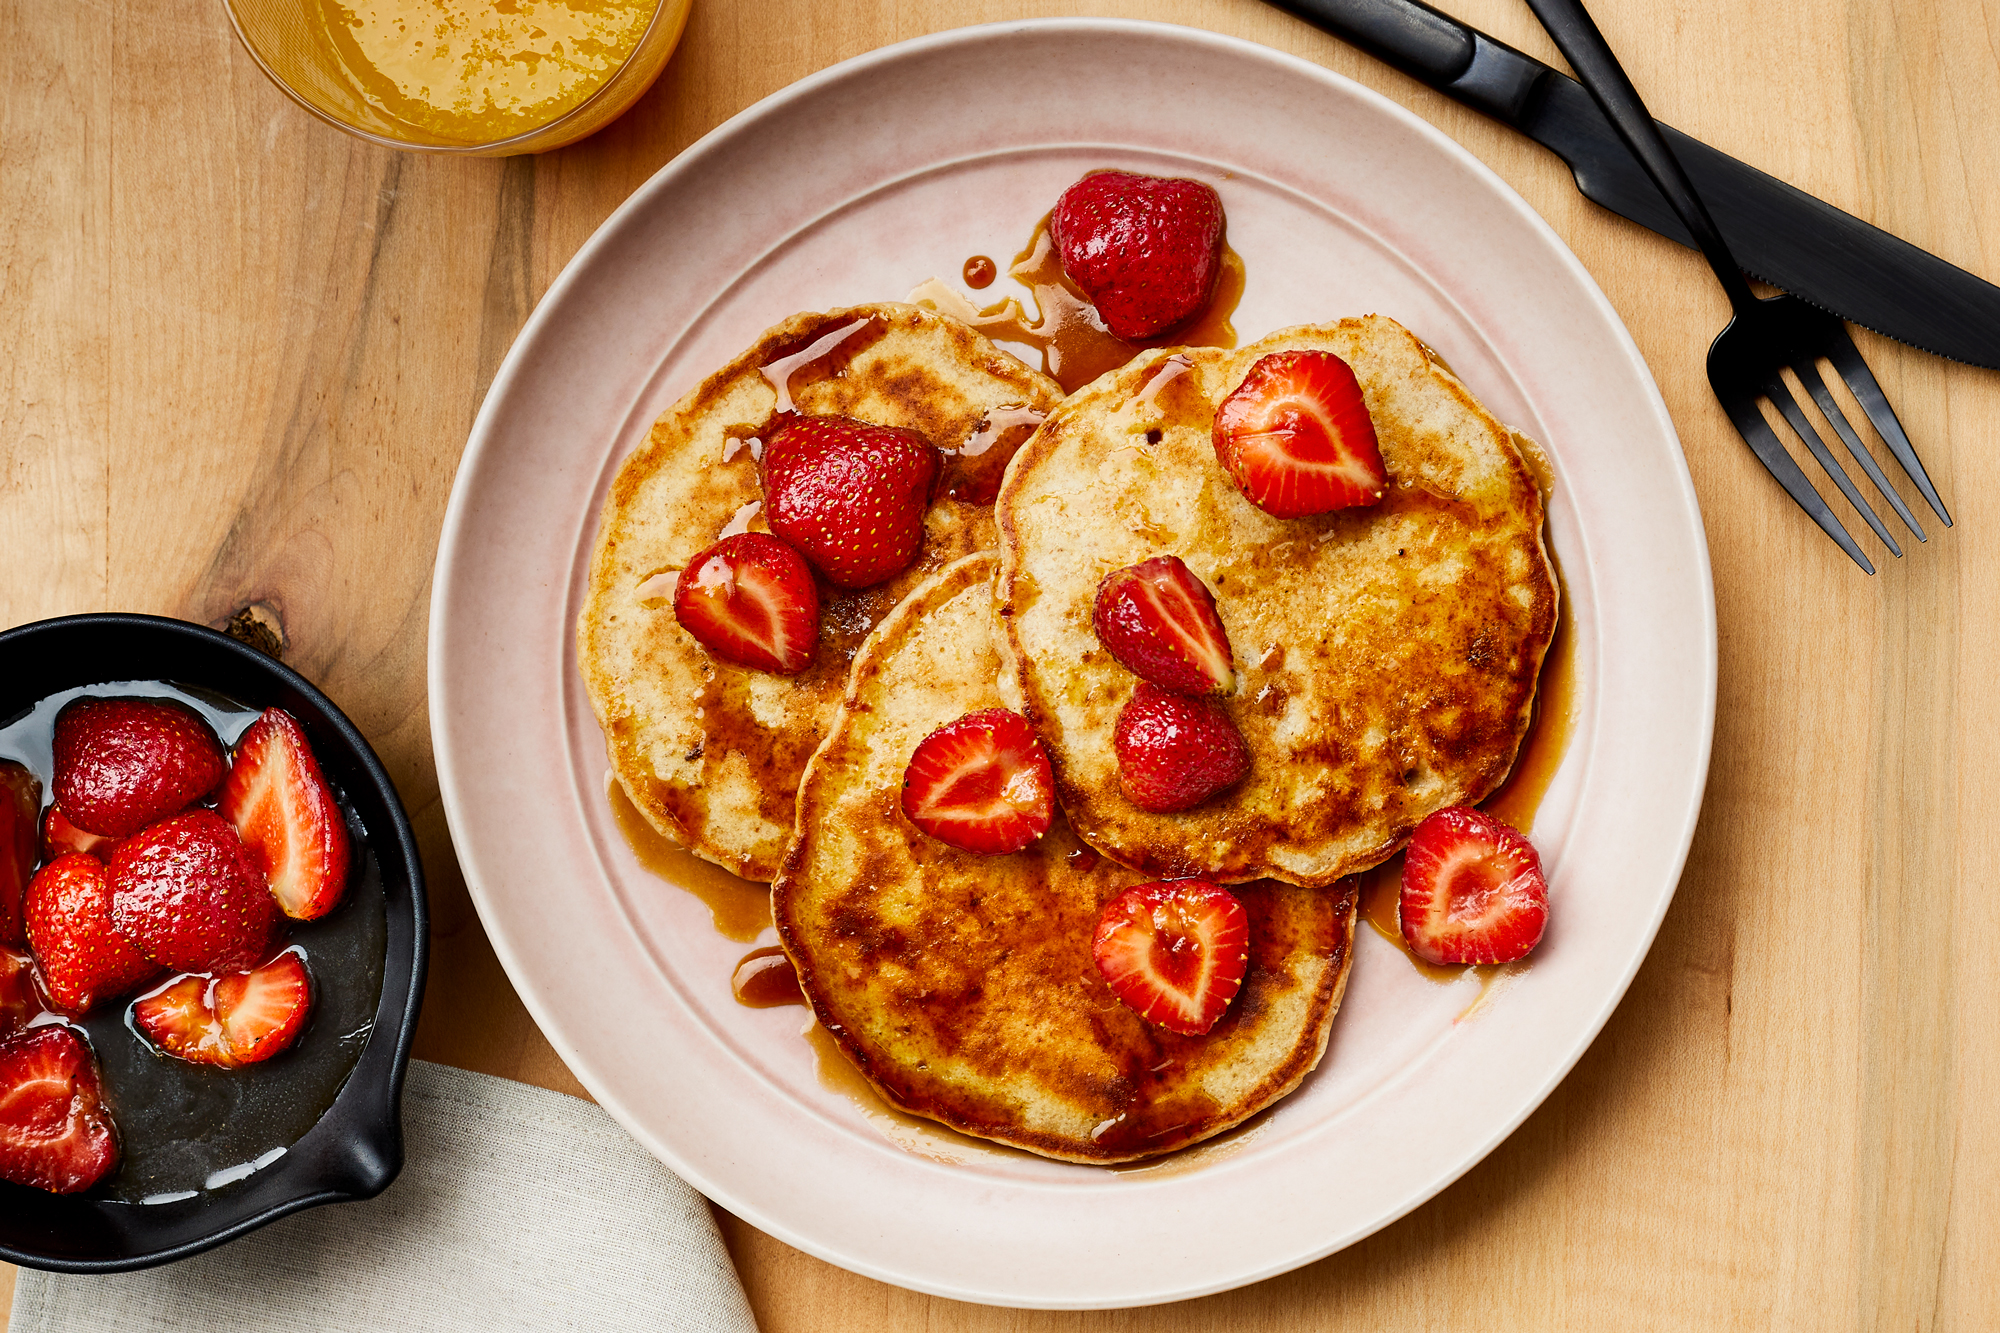 Sourdough Pancakes with Maple-Molasses Strawberries